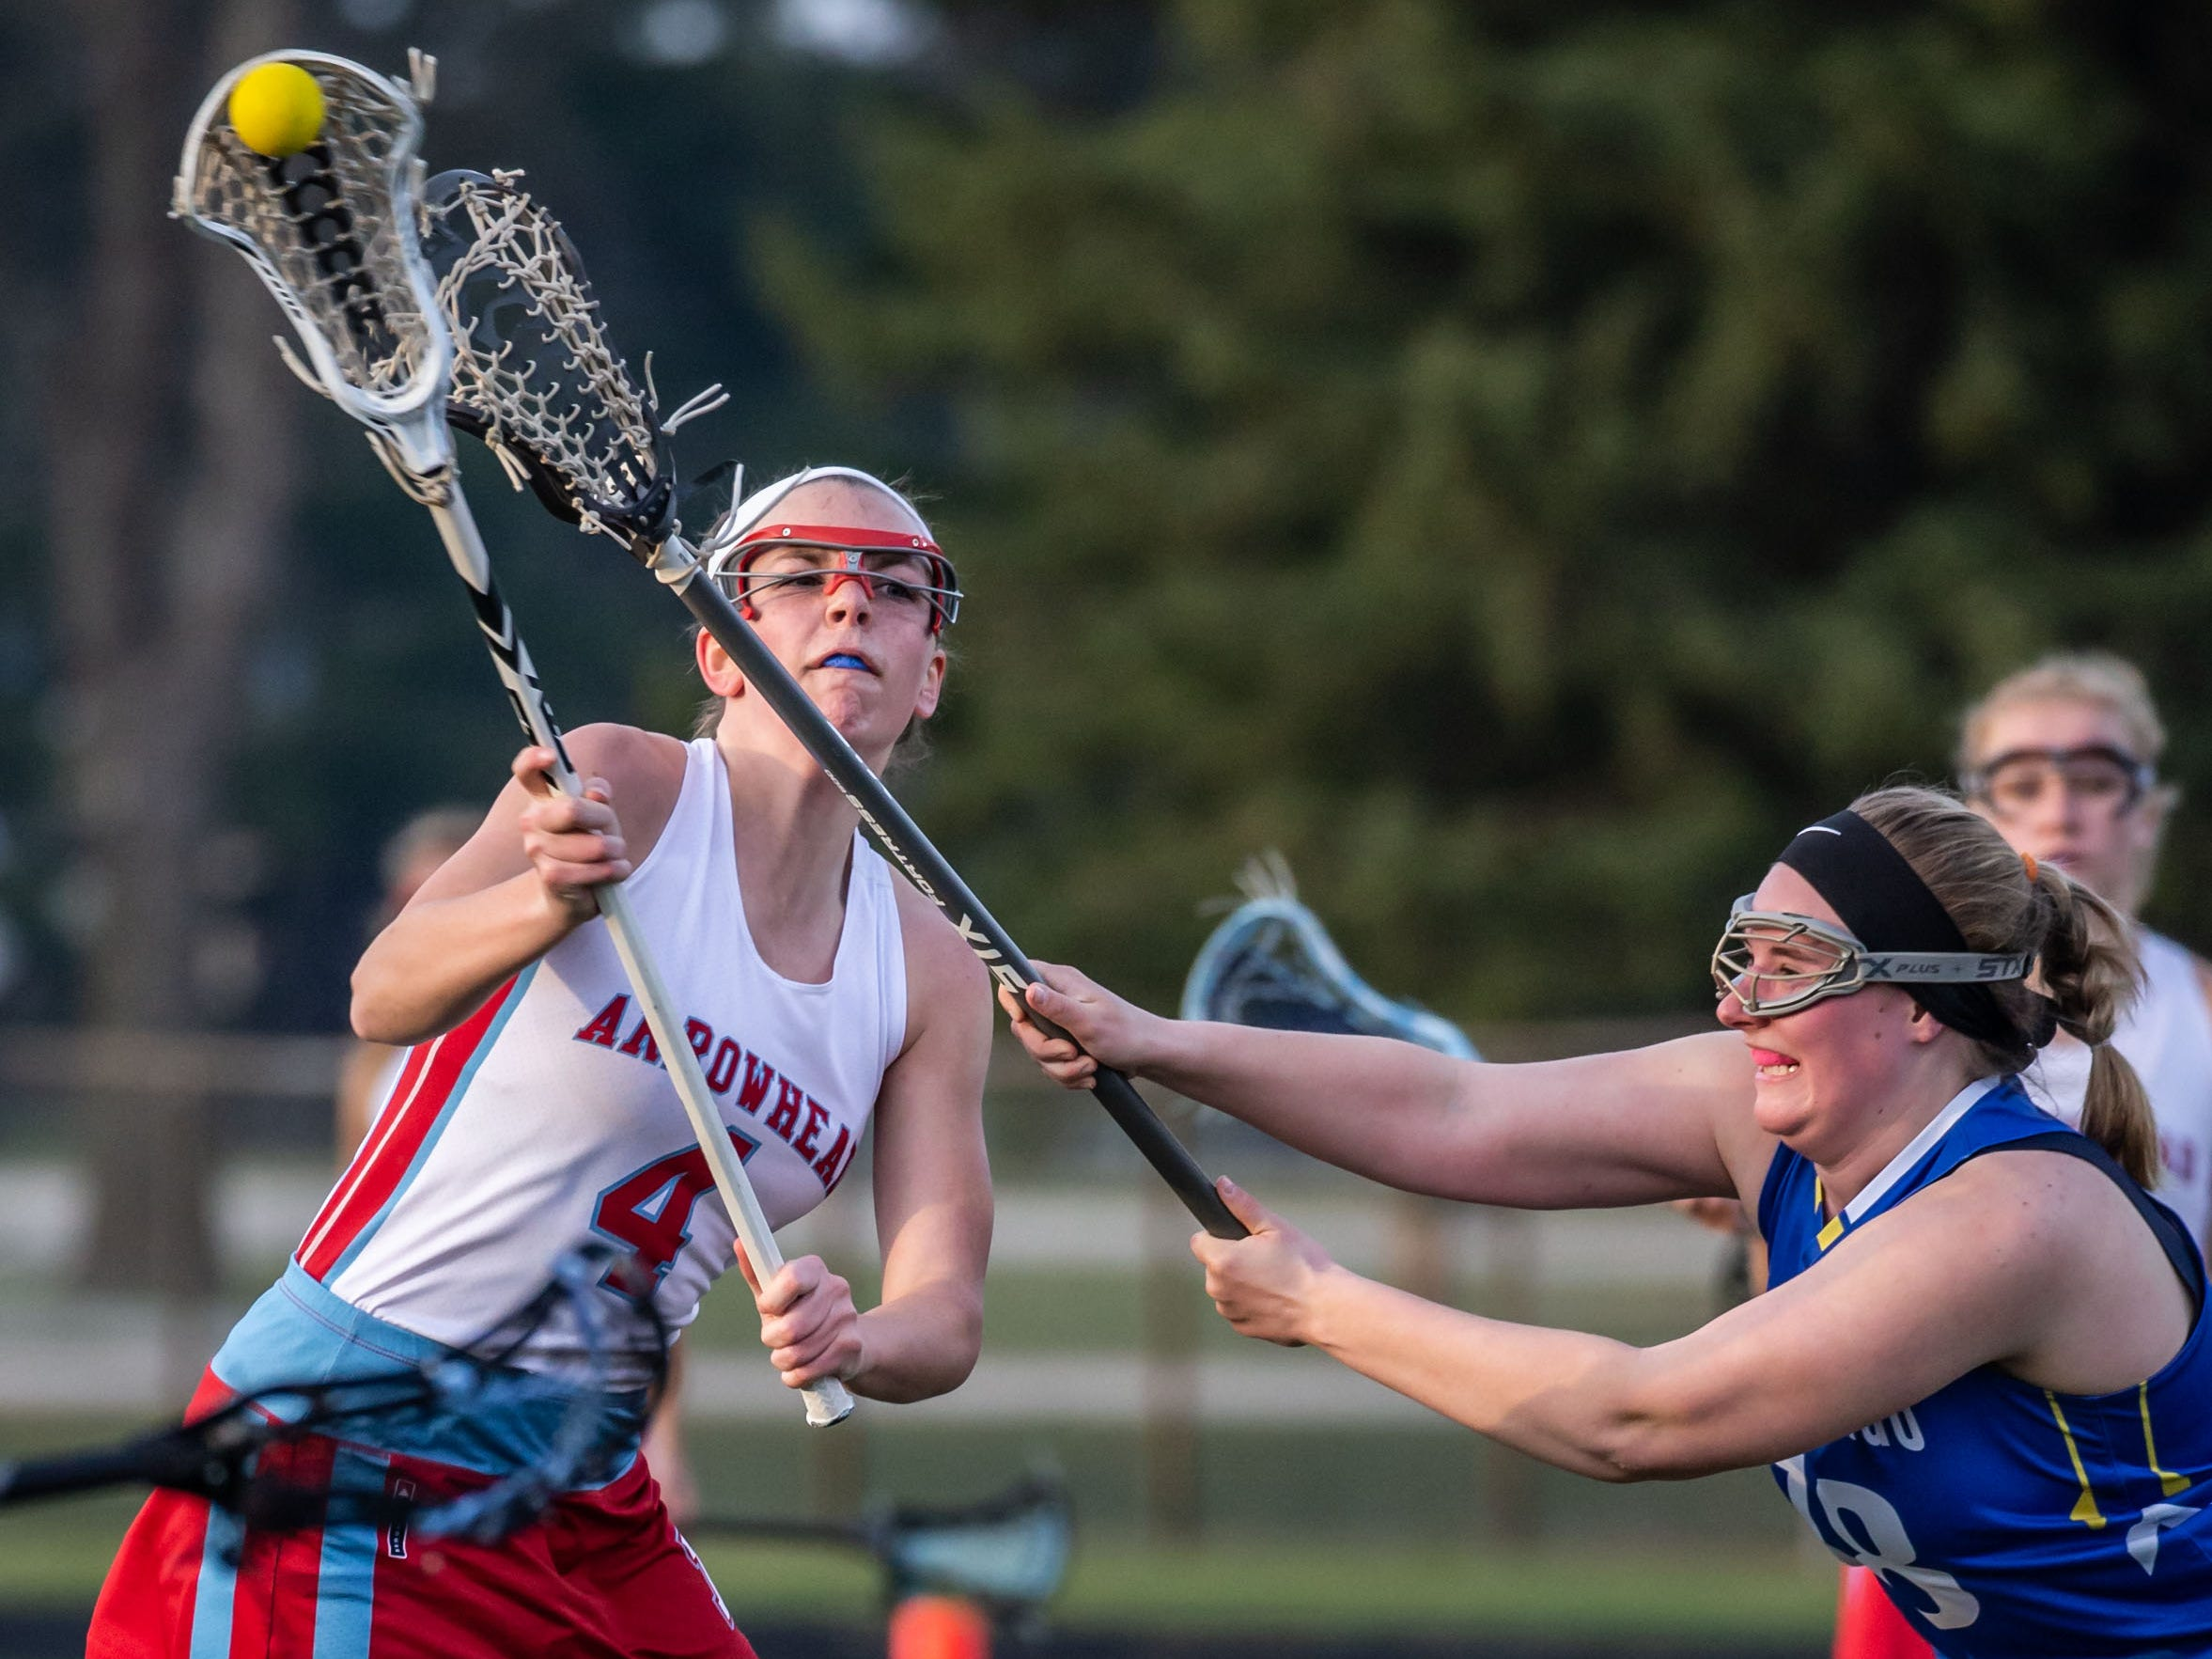 Arrowhead's Kylee Manser (4) scores during the game at home against Mukwonago on Tuesday, April 16, 2019.